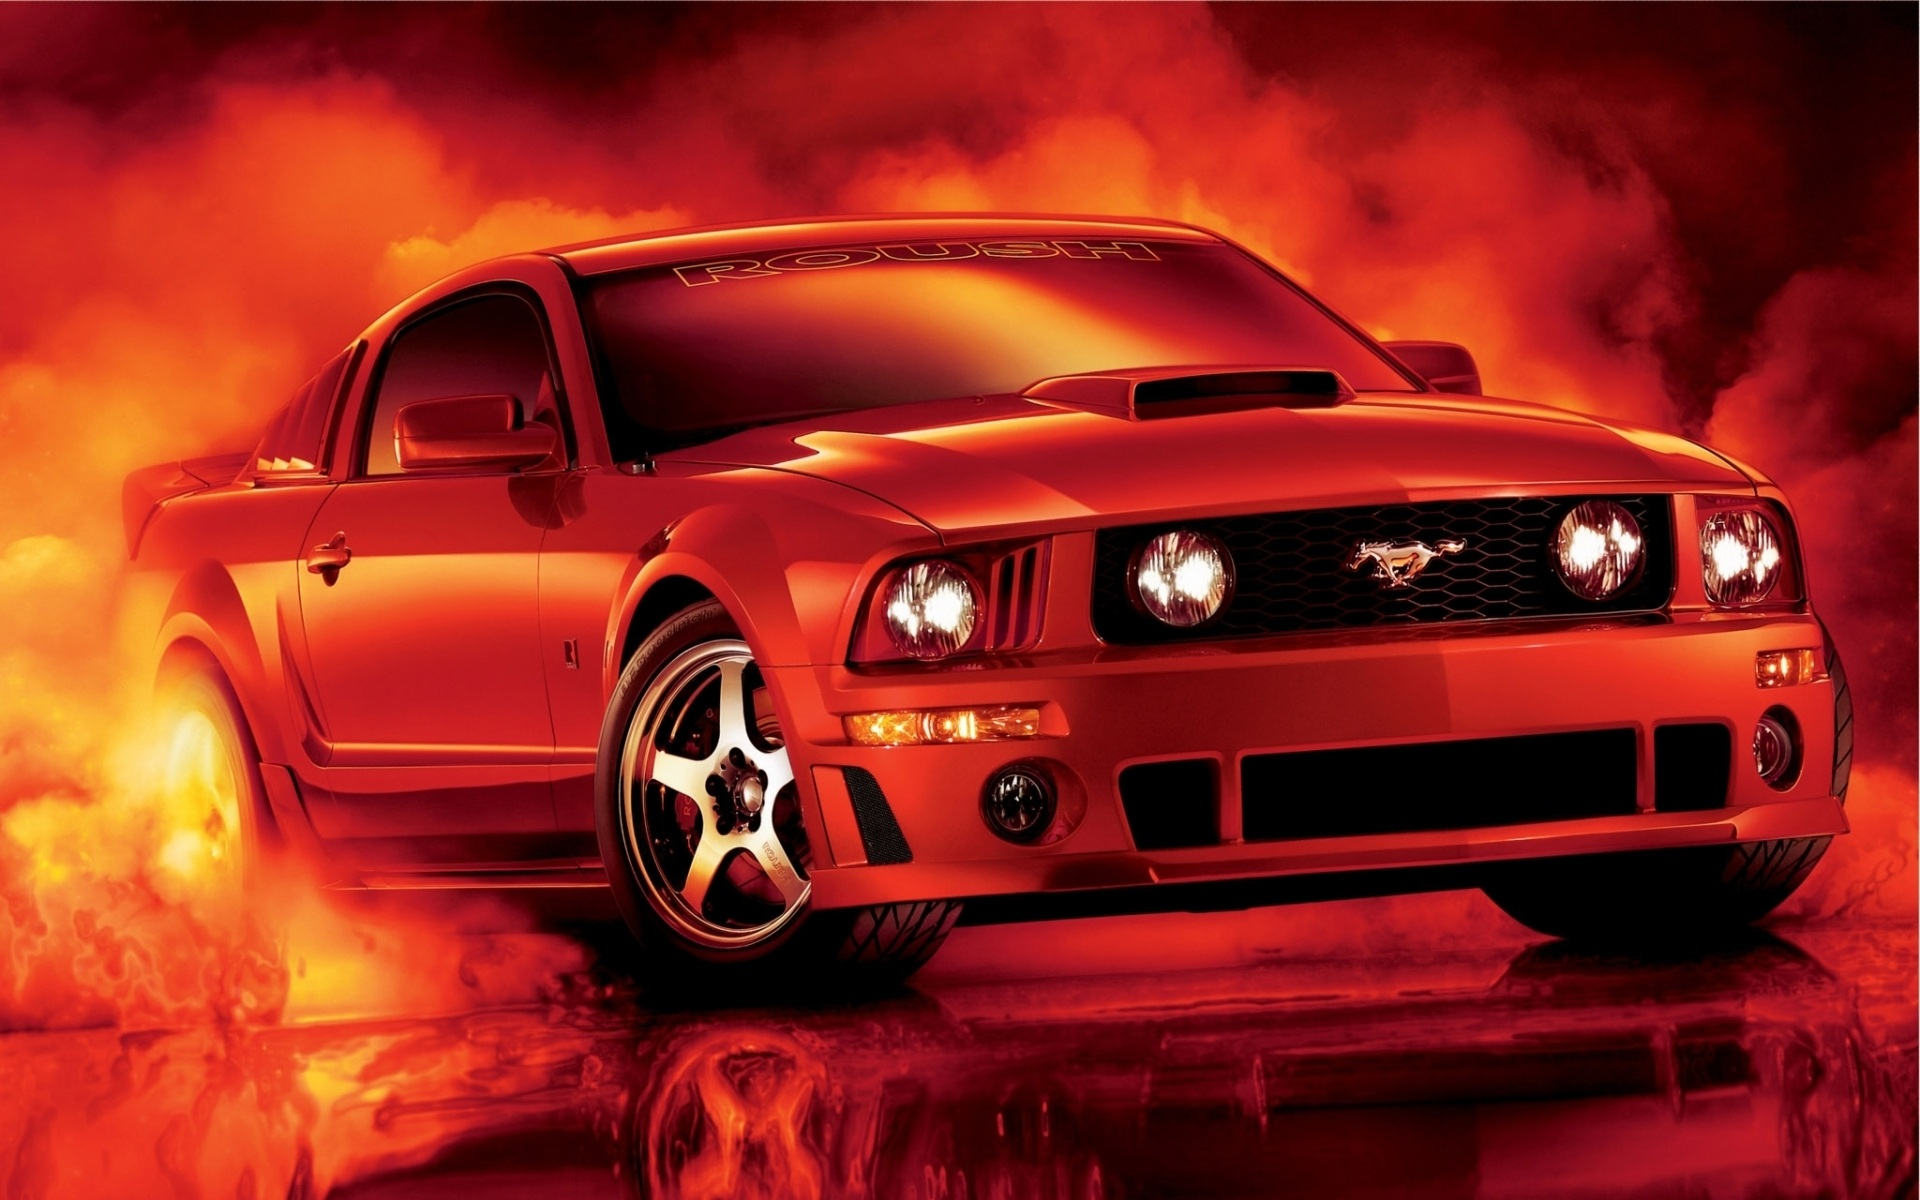 wallpaper red ford mustang car 1920x1200 hd picture image. Black Bedroom Furniture Sets. Home Design Ideas